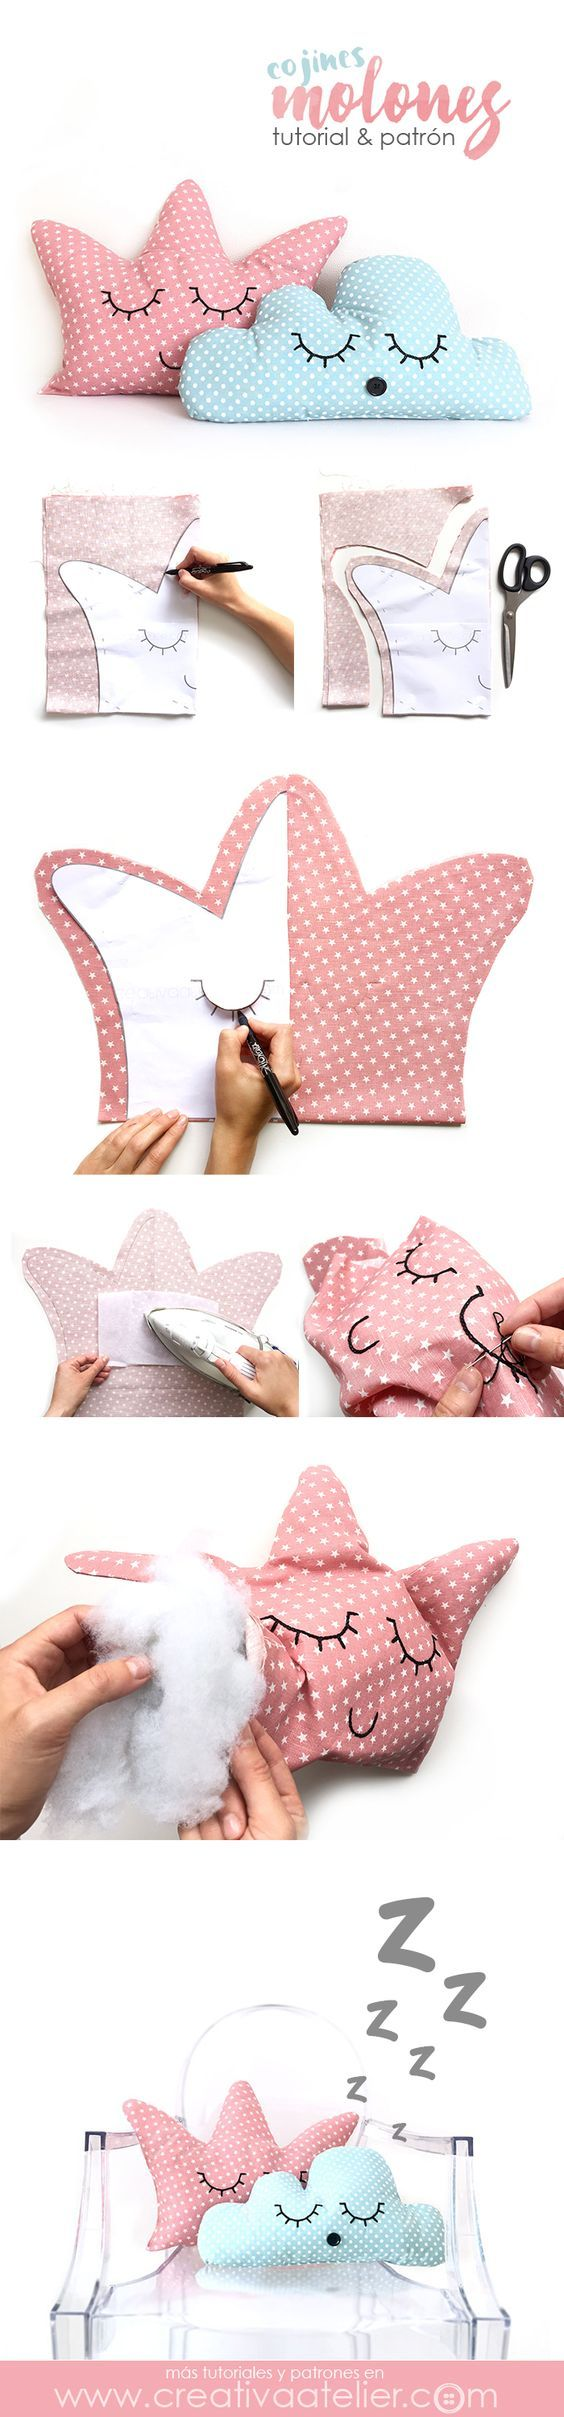 Tutorial for this cute cushion! Use Google Translate for English instructions.